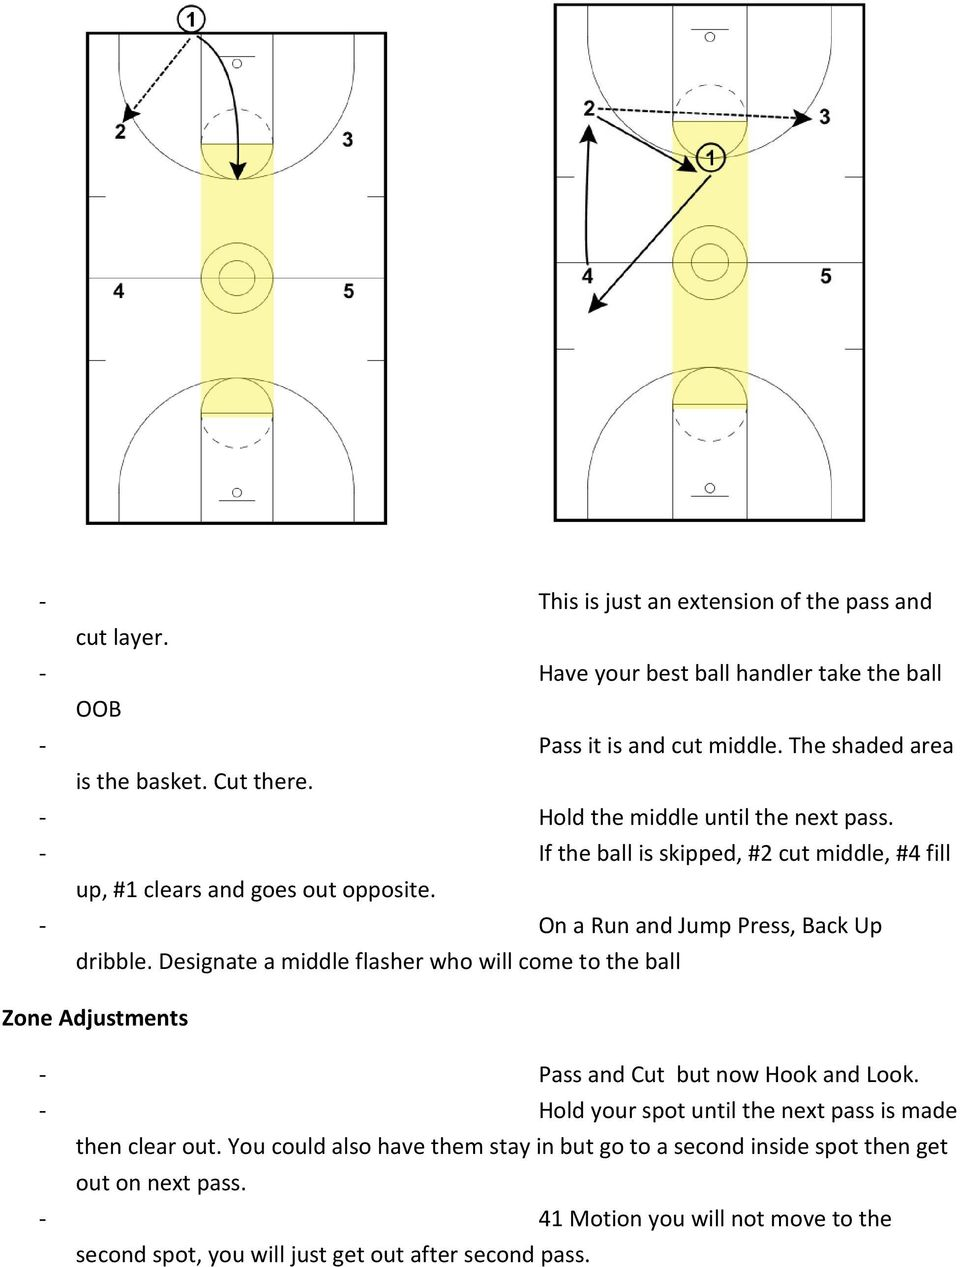 Designate a middle flasher who will come to the ball Zone Adjustments - Pass and Cut but now Hook and Look. - Hold your spot until the next pass is made then clear out.